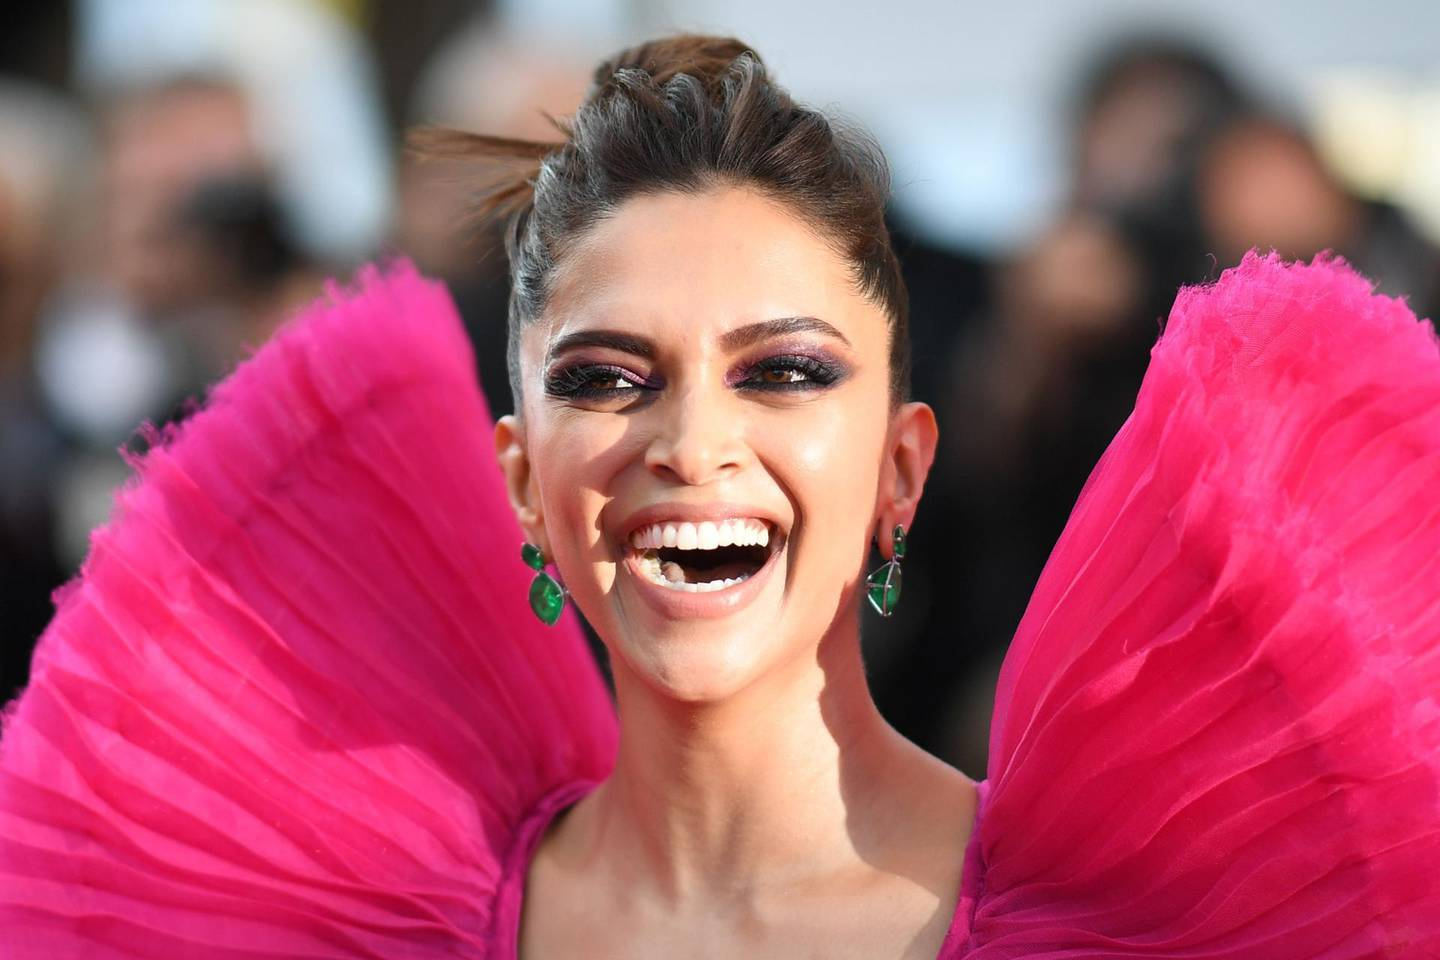 """Indian actress Deepika Padukone poses as she arrives on May 11, 2018 for the screening of the film """"Ash is Purest White (Jiang hu er nv)"""" at the 71st edition of the Cannes Film Festival in Cannes, southern France.  / AFP / LOIC VENANCE"""